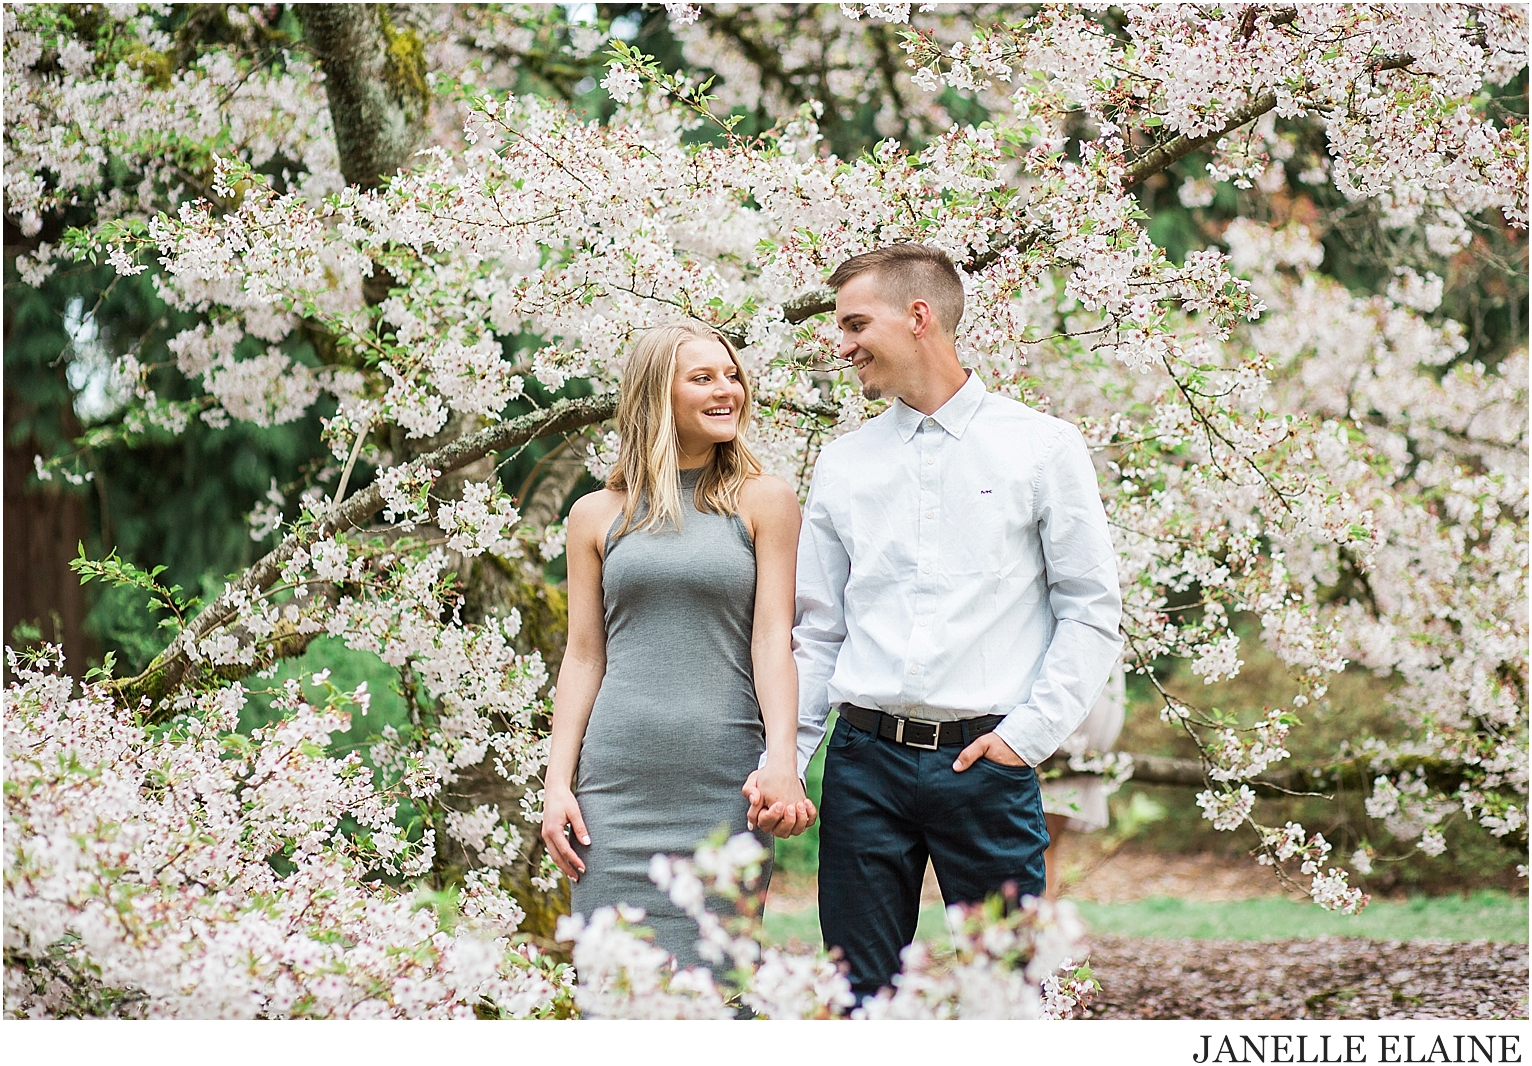 tricia and nate engagement photos-janelle elaine photography-138.jpg